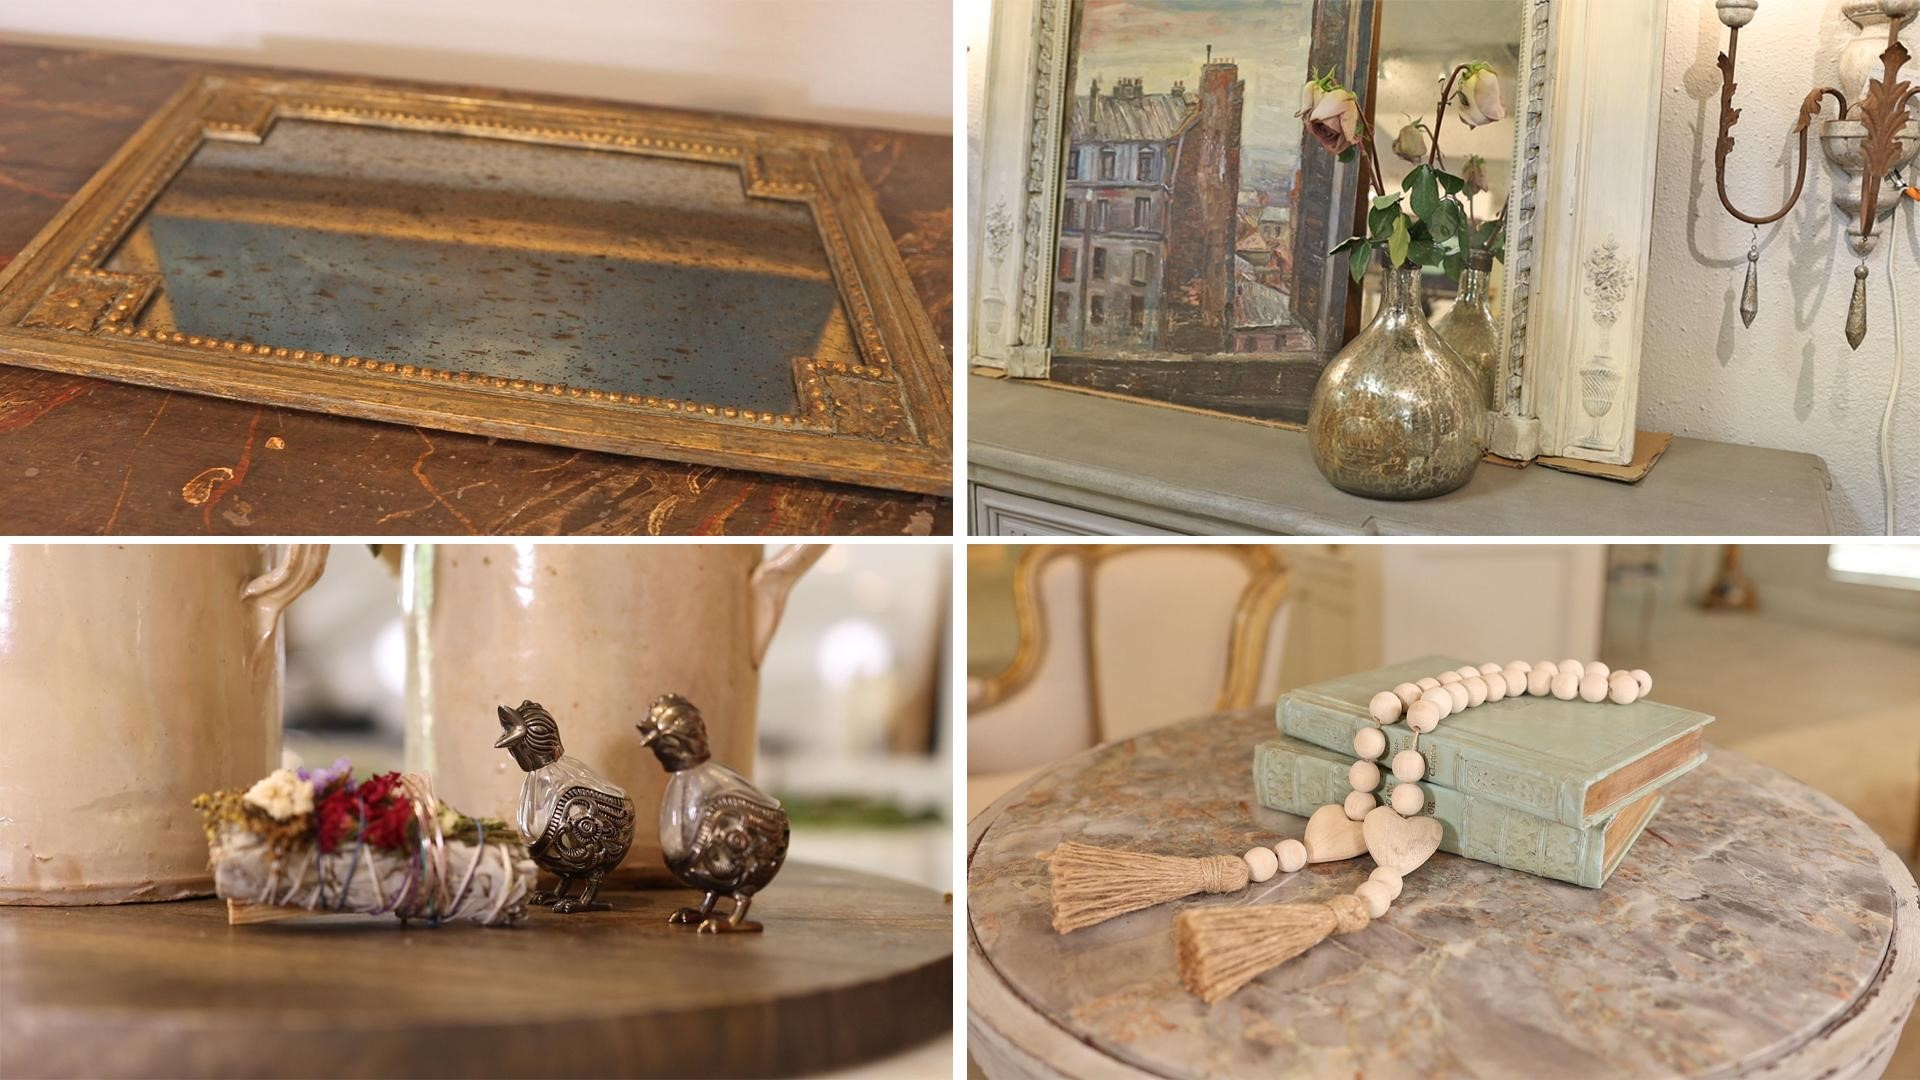 Assorted French country decor mirrored tray, vases, floral arrangements, salt shakers, and rosary beads layered in your home to add hints of Farmhouse meets glam.